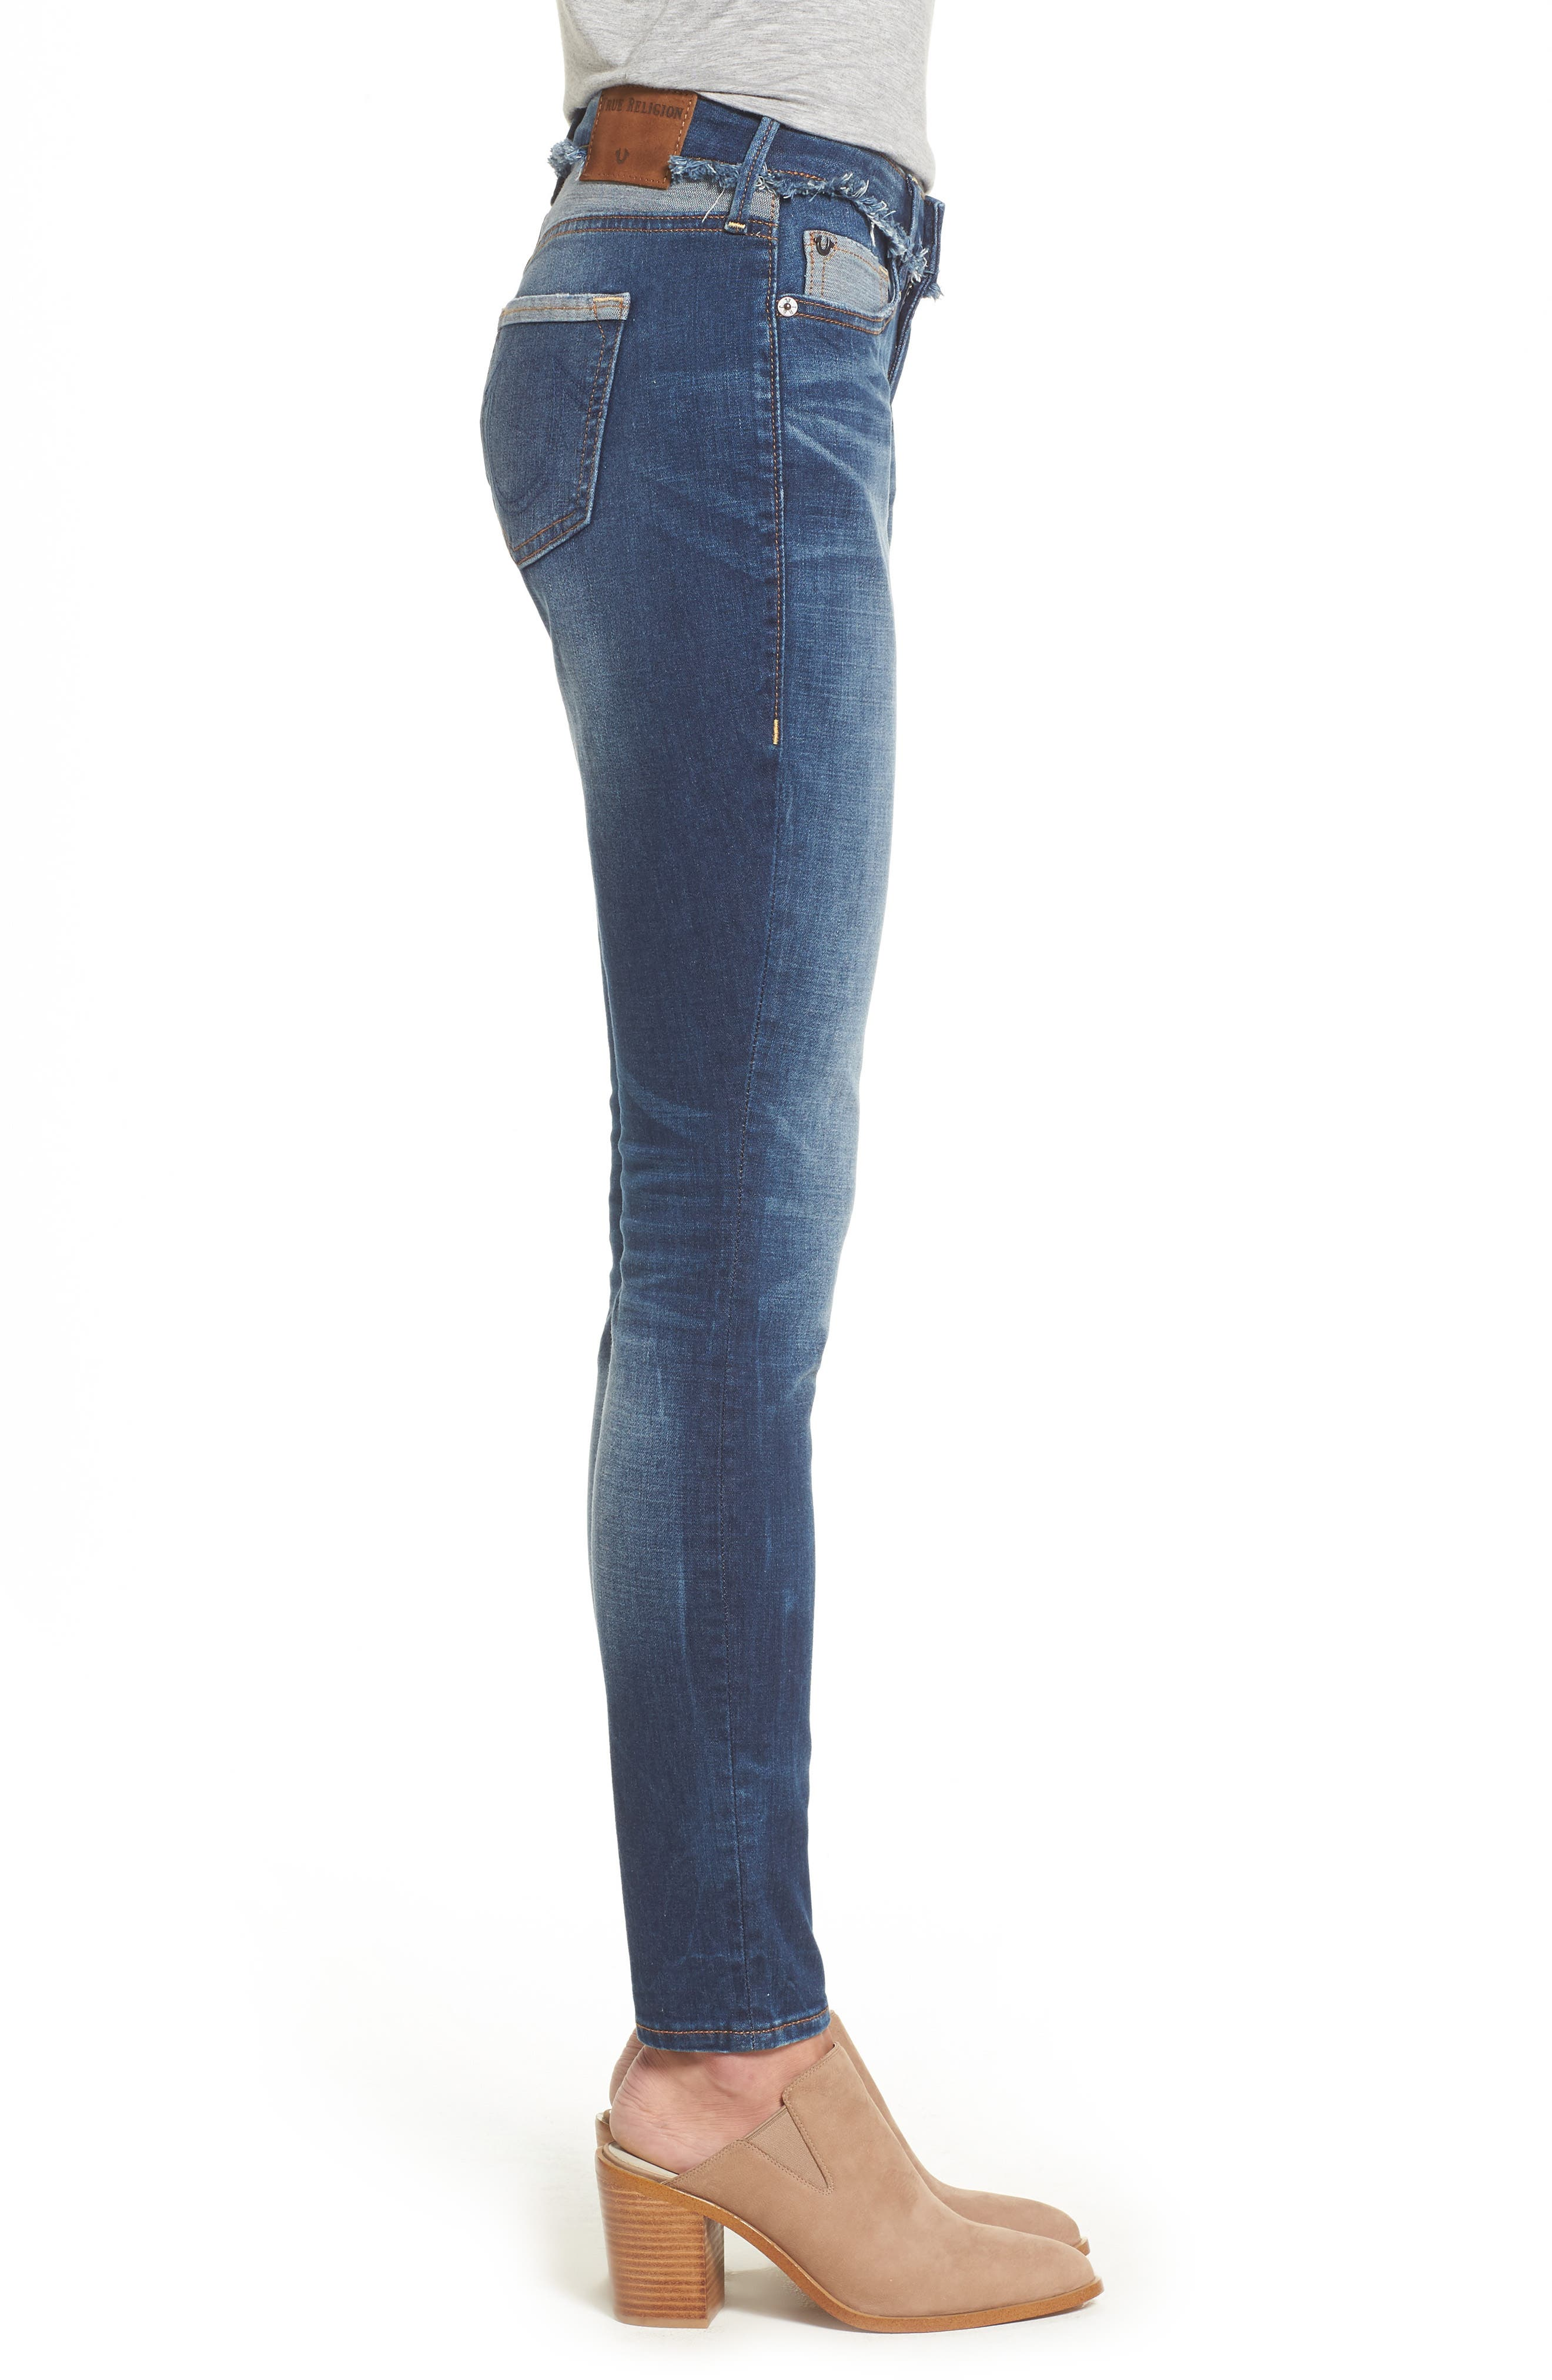 Jennie Deconstructed Skinny Jeans,                             Alternate thumbnail 3, color,                             401